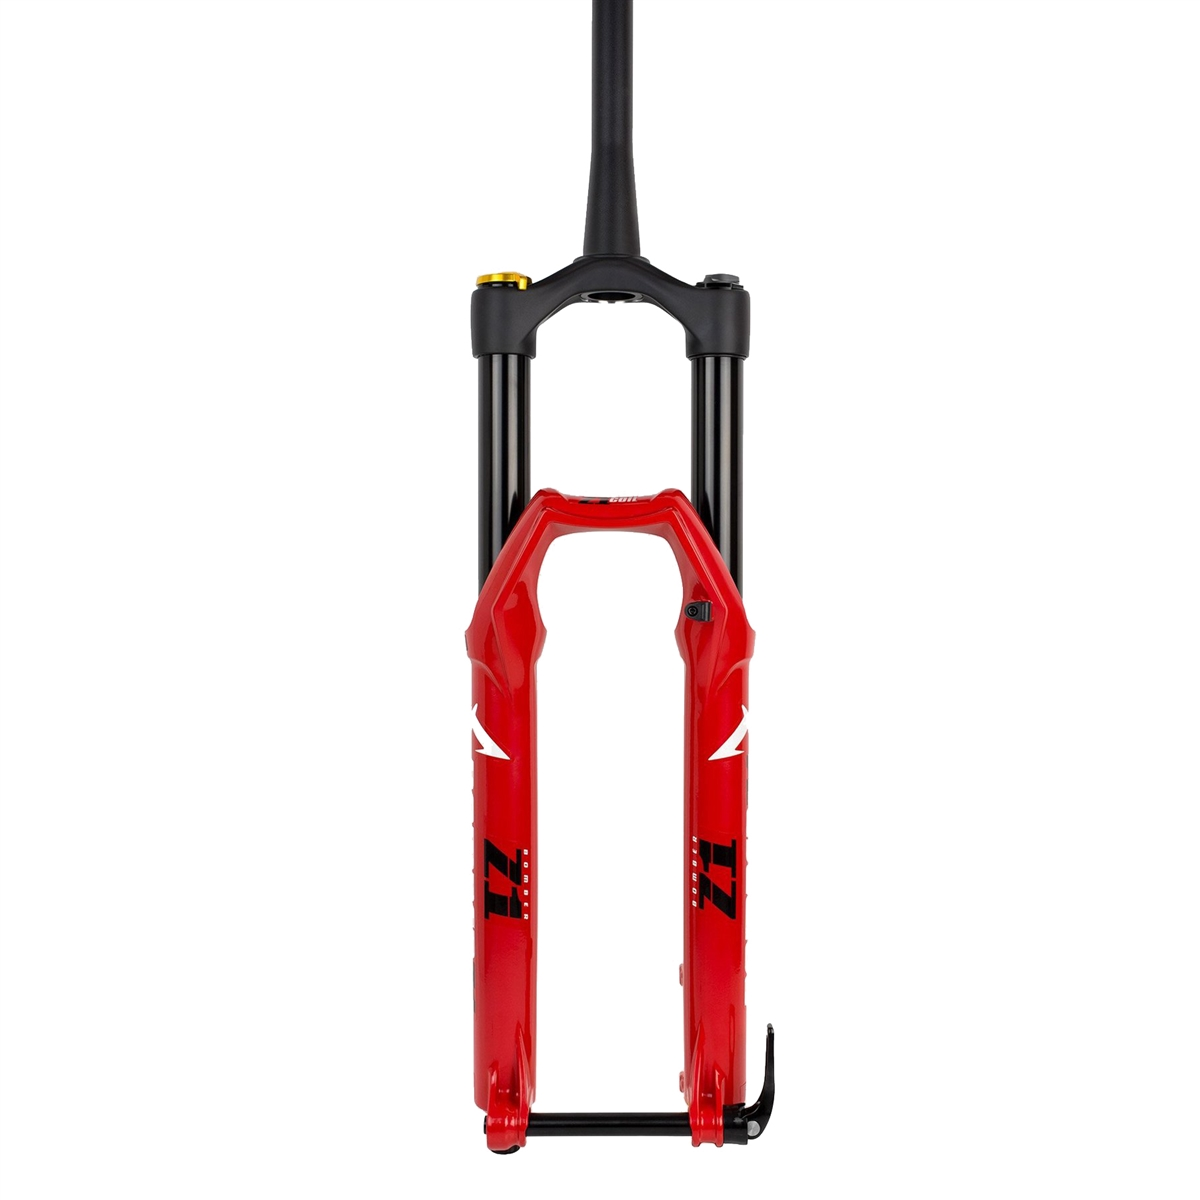 Bomber Z1 Coil fork 27.5'' 180mm 15x110 boost Offset 44mm red 2022